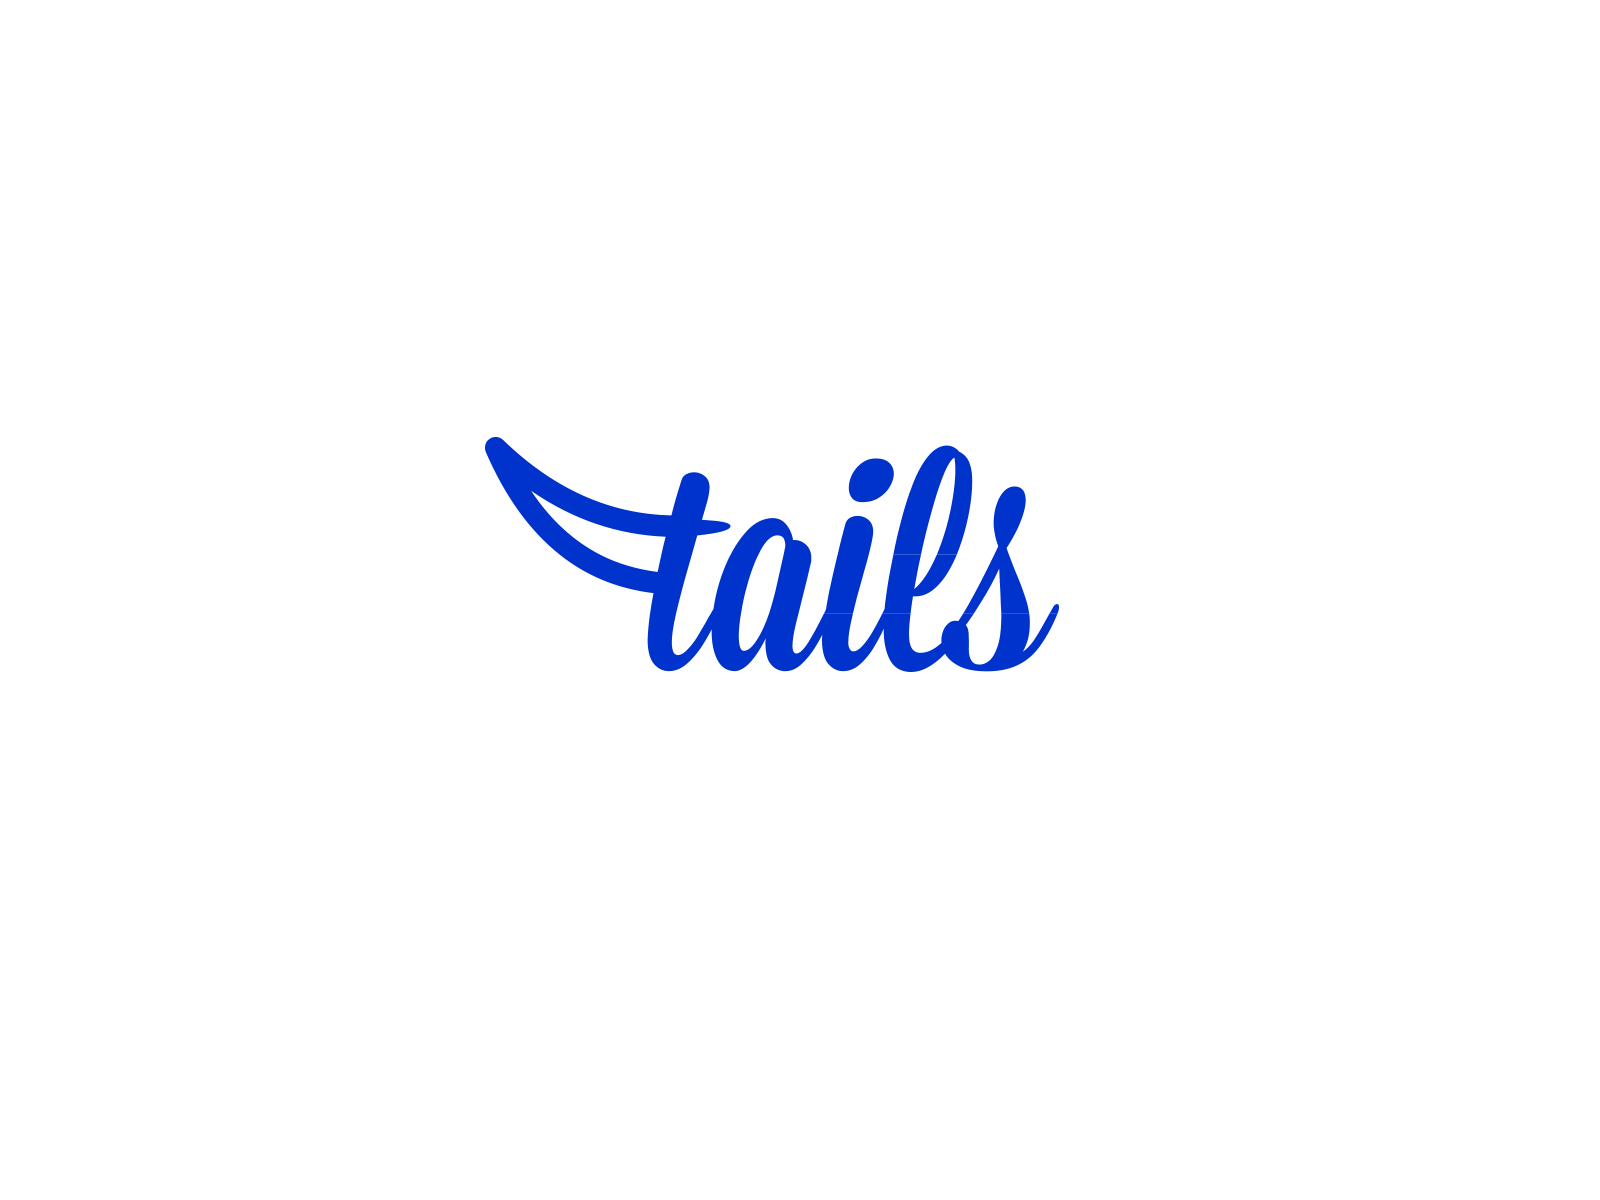 Tails Logotype / concept